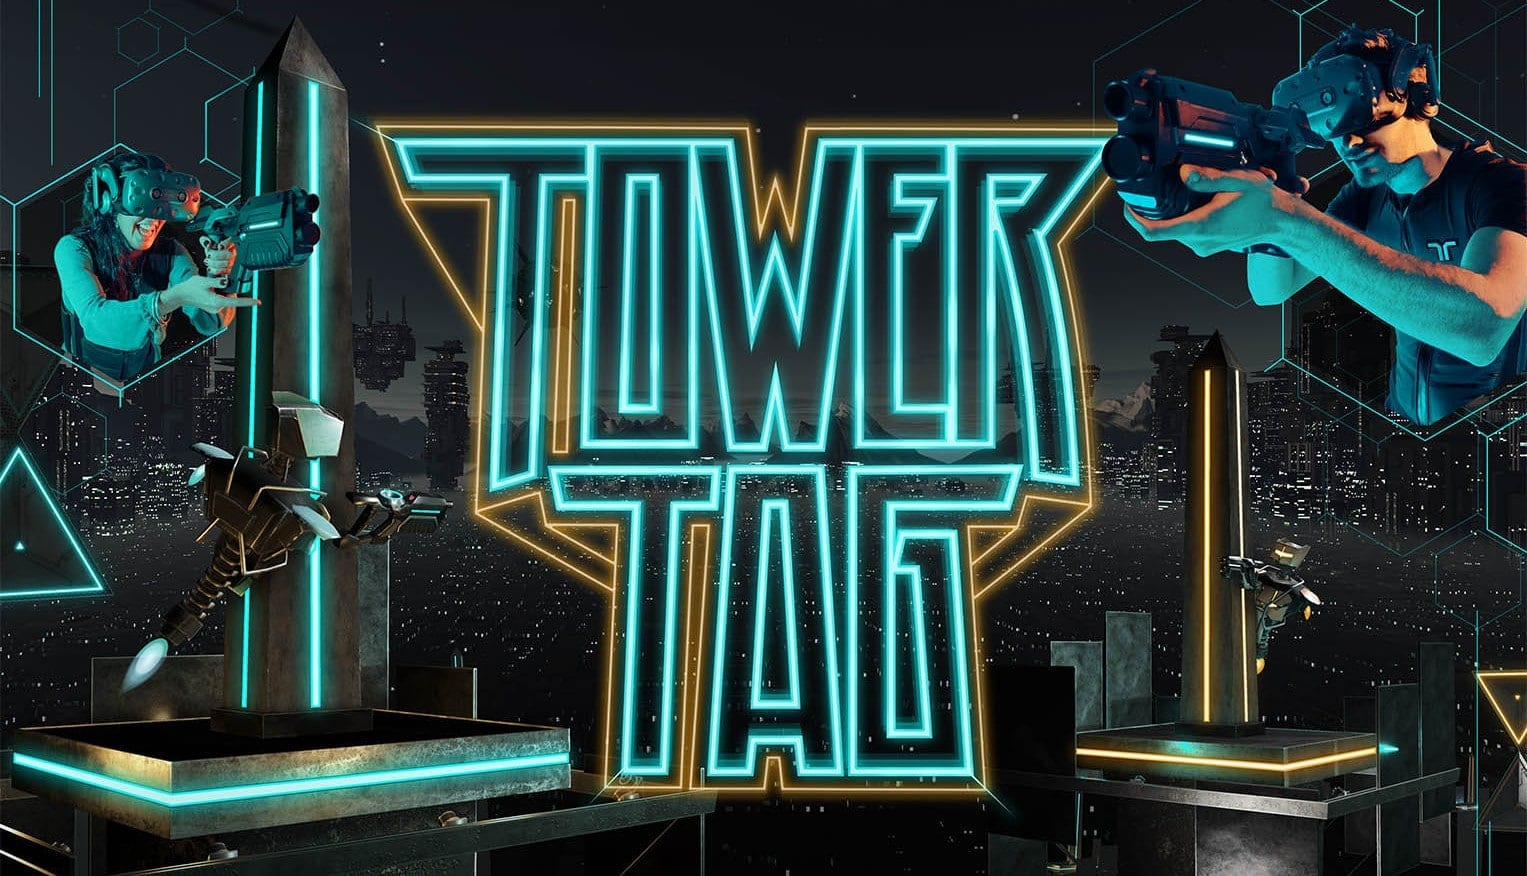 Tower Tag is a dynamic sci-fi platform shooter where  players strategically move around the map by controlling platforms and moving between them to gain advantages over their opponents. Each platform has a central tower that can be used for cover from incoming fire. Controlling platforms is the key to being able to outmaneuver and outgun your enemies! Don't rely on just being a good shot!